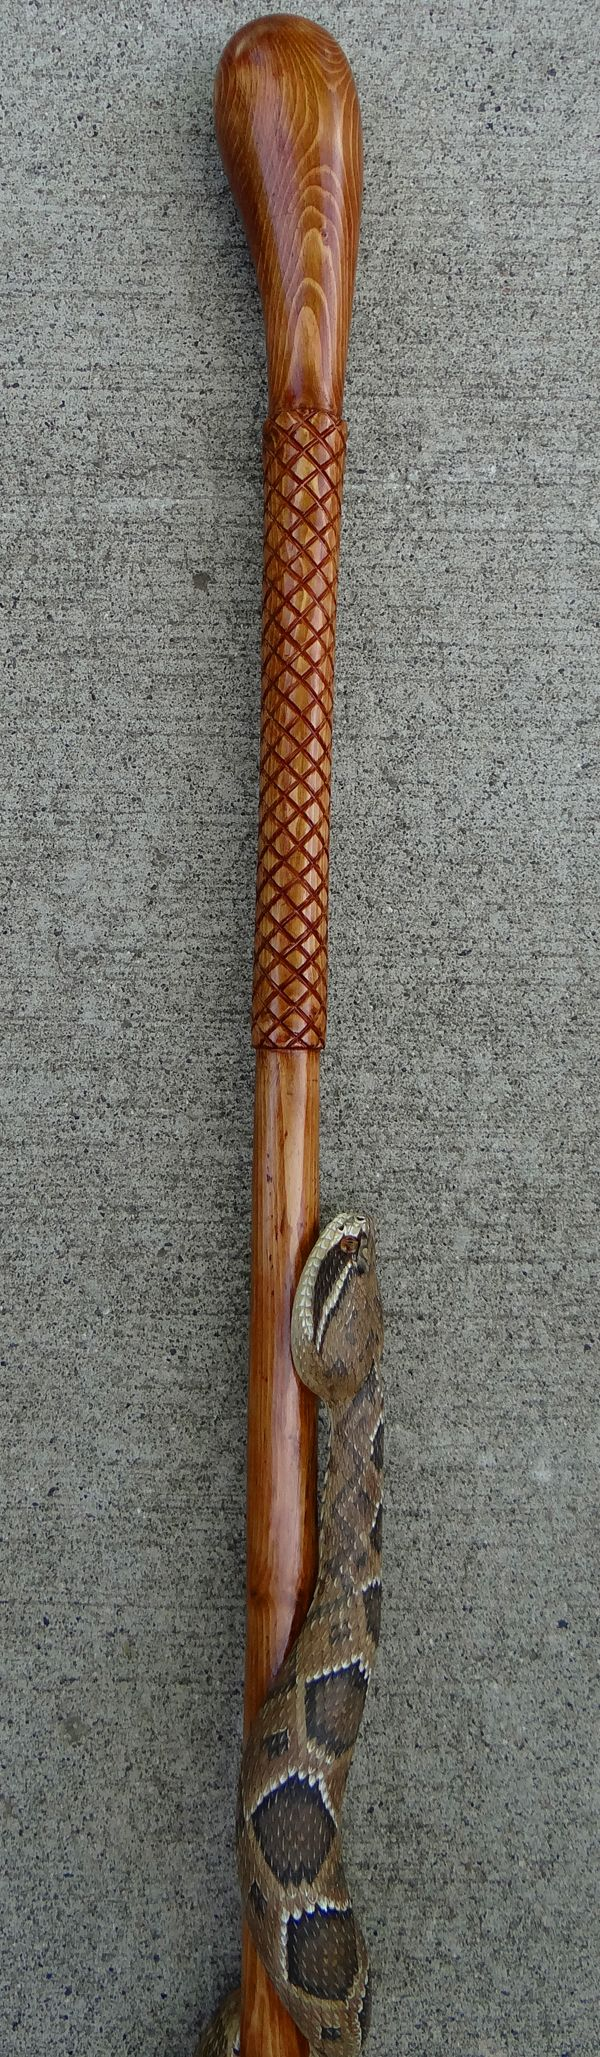 Best images about carving walking sticks on